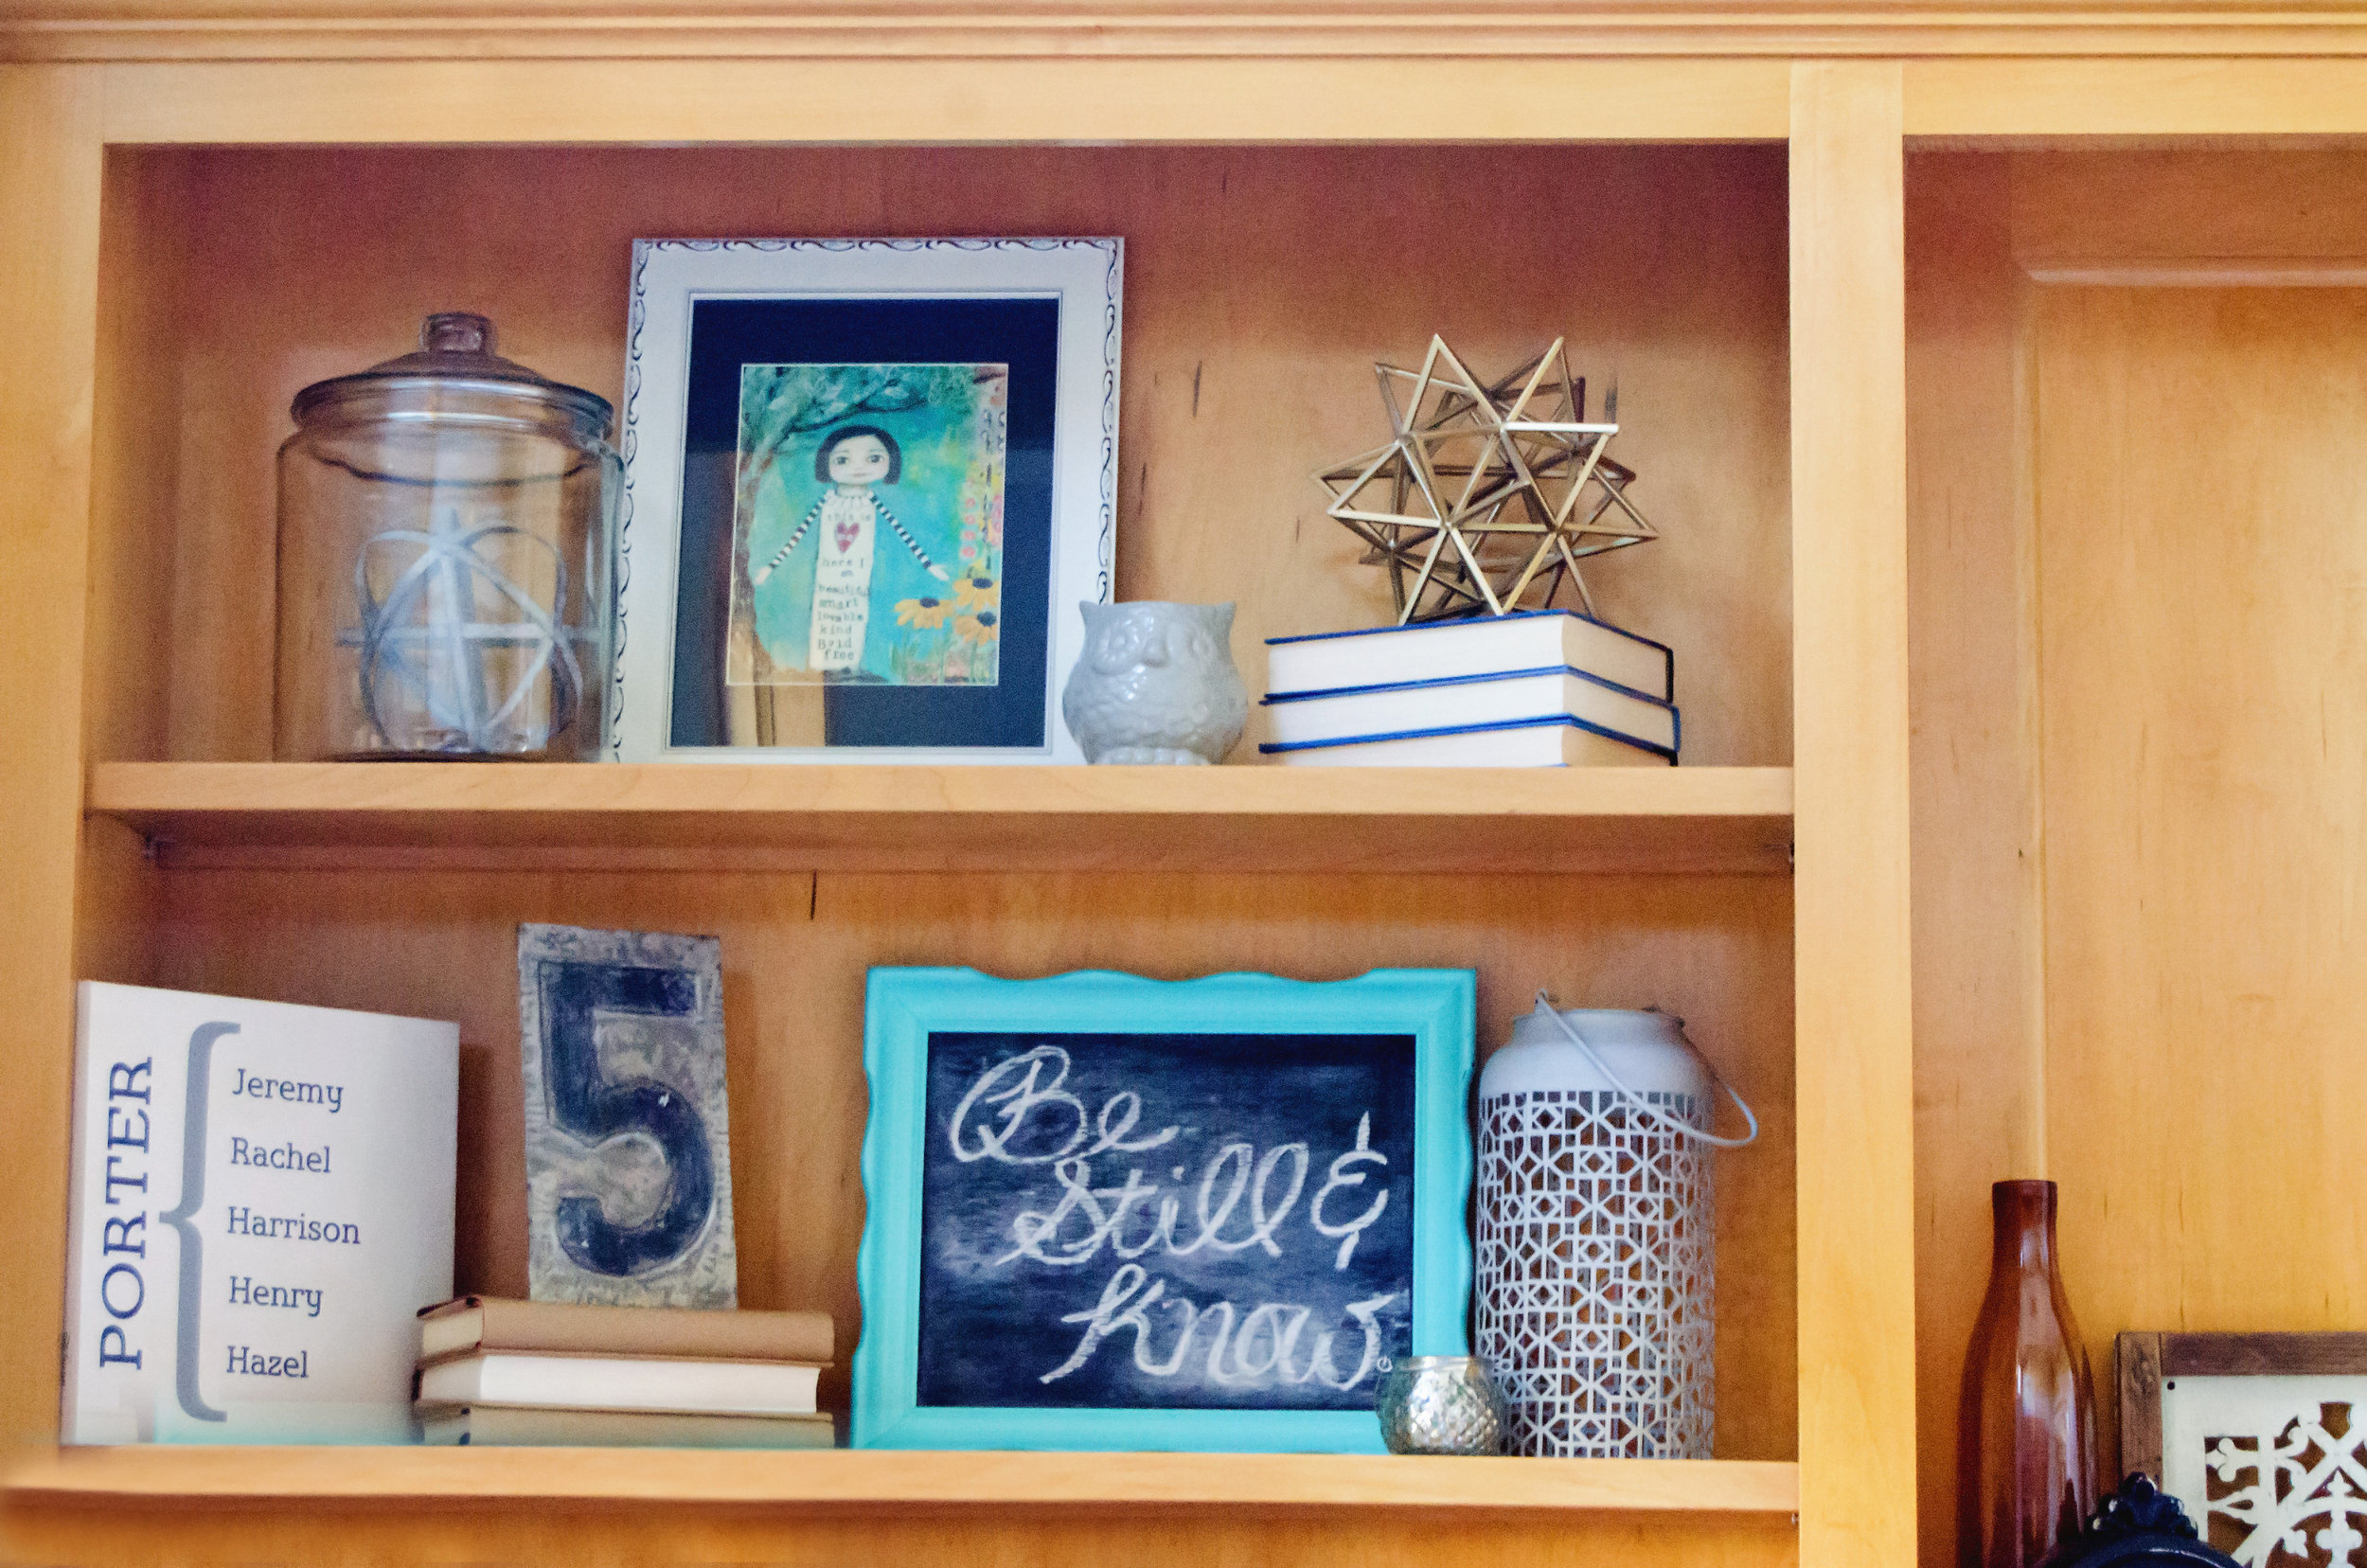 Shelf styling using chalkboards, books, and vintage finds. | hprallandco.com